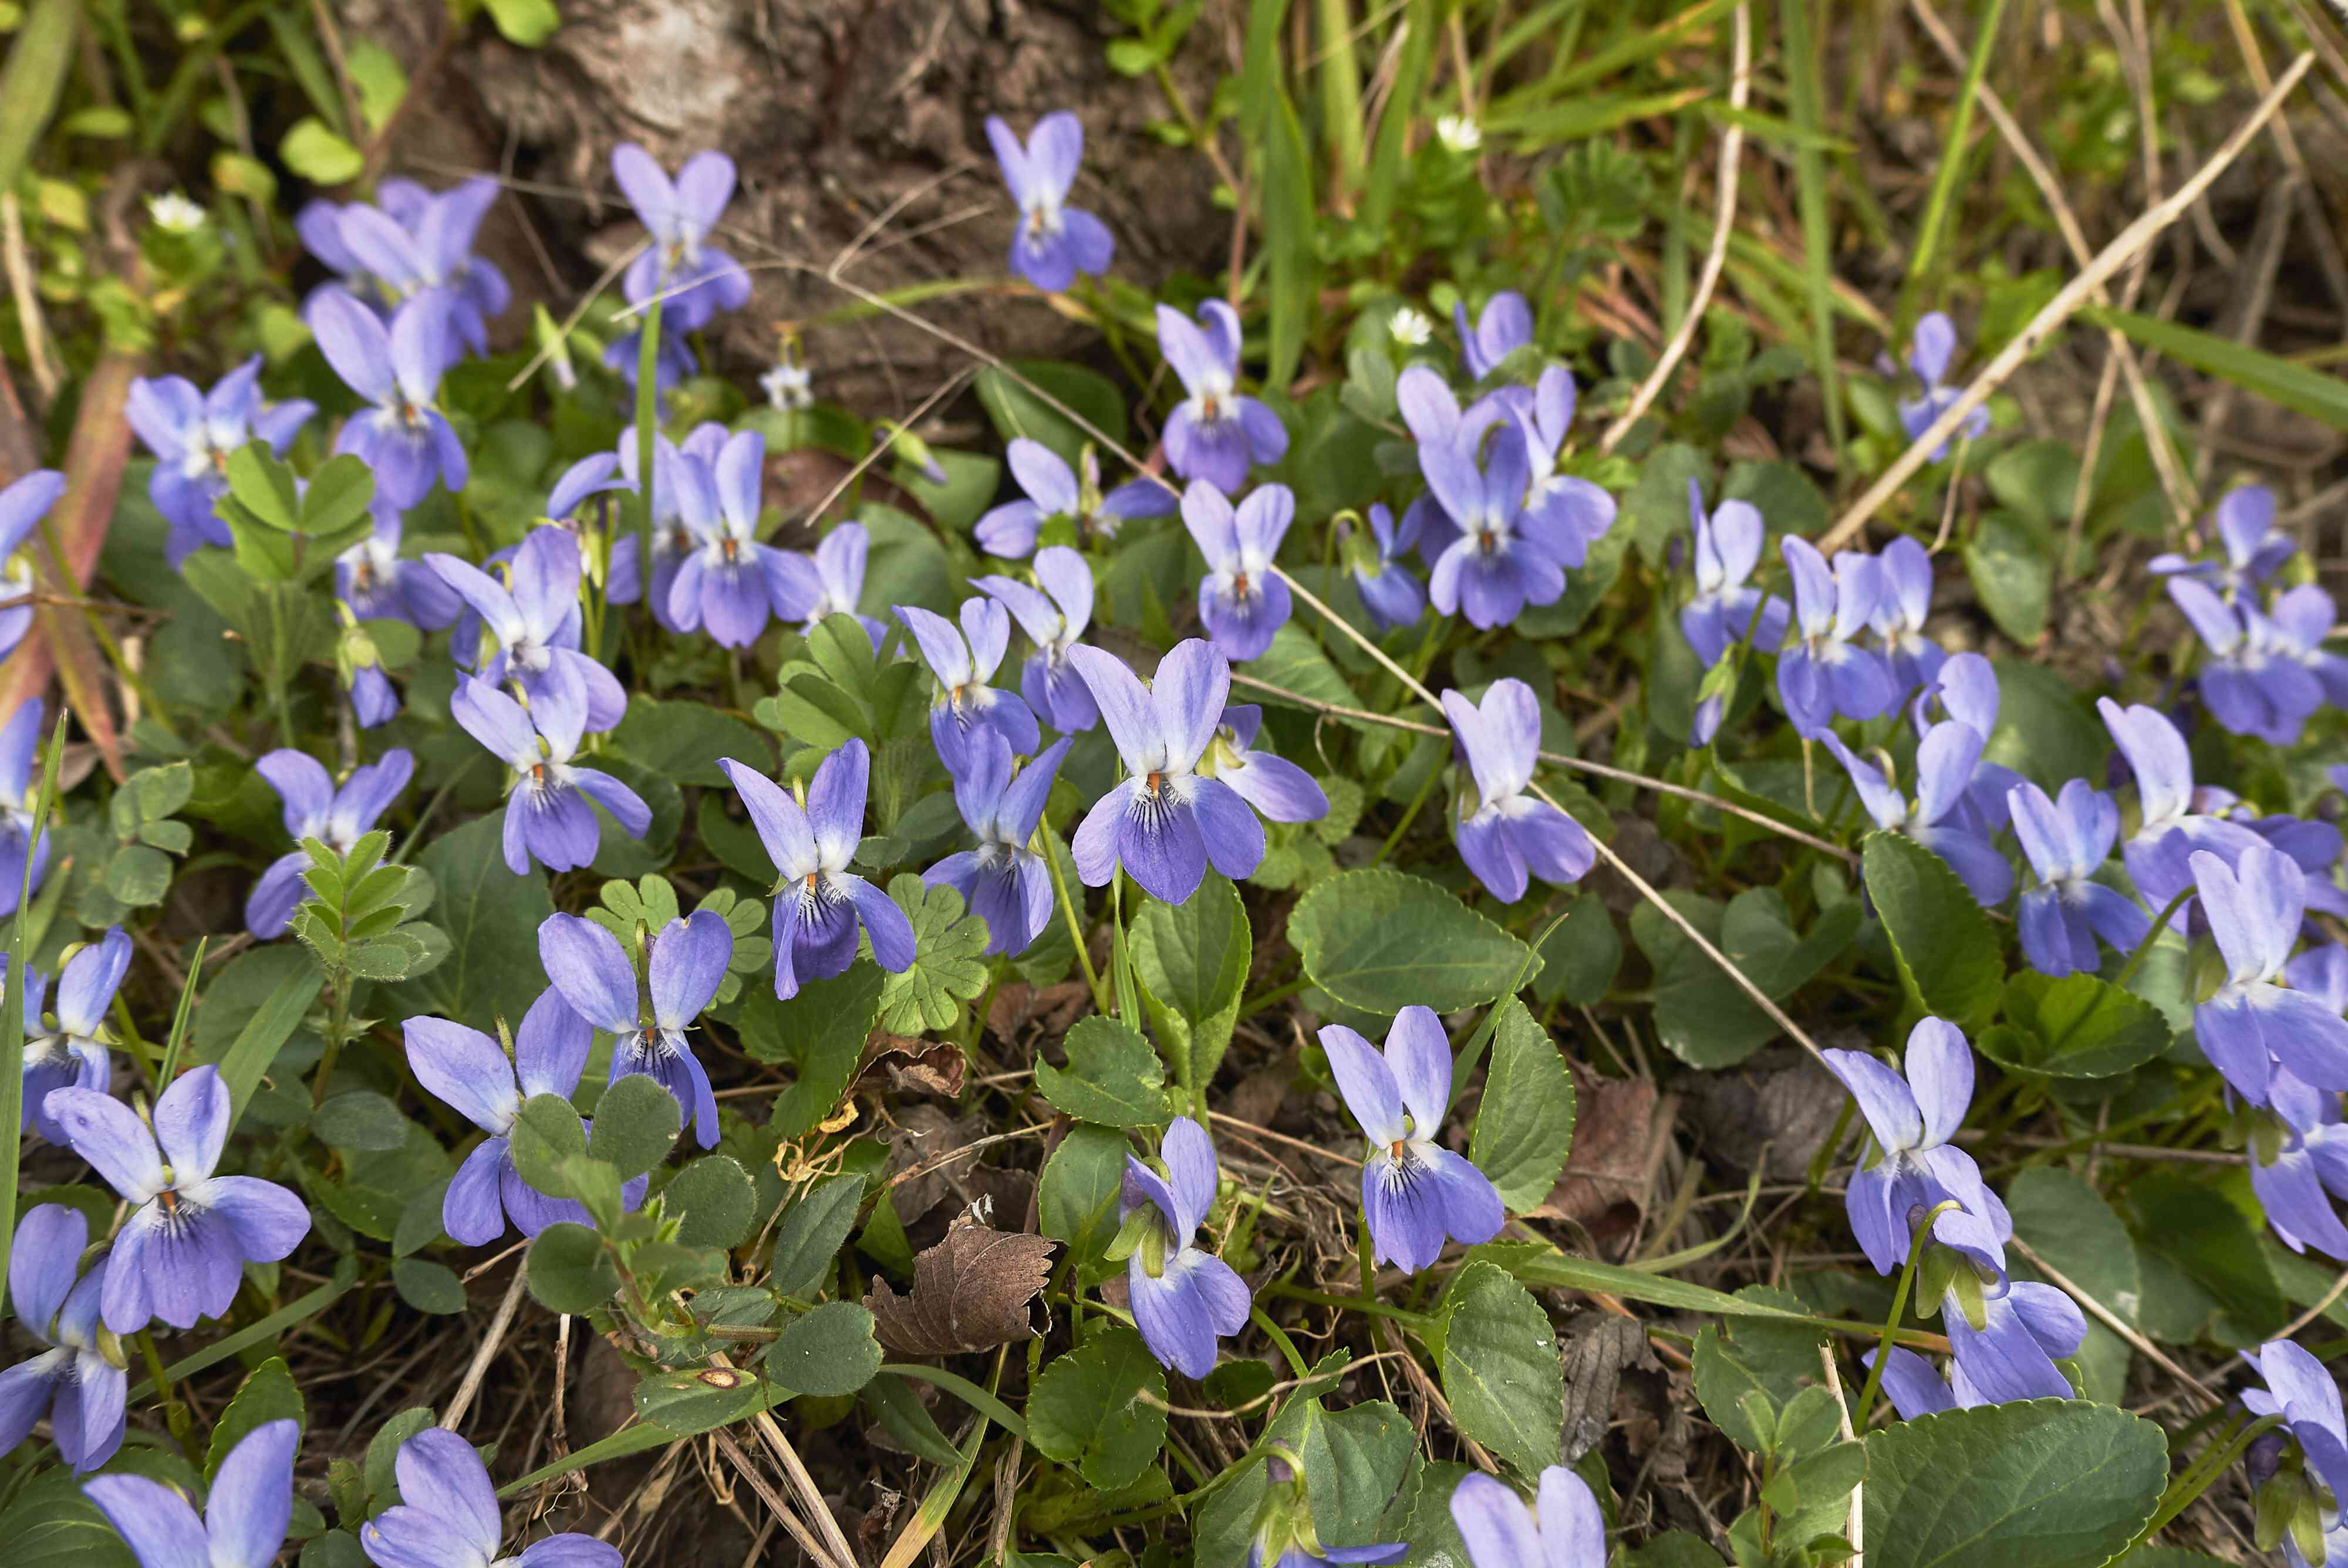 Violet flowers covering the forest floor